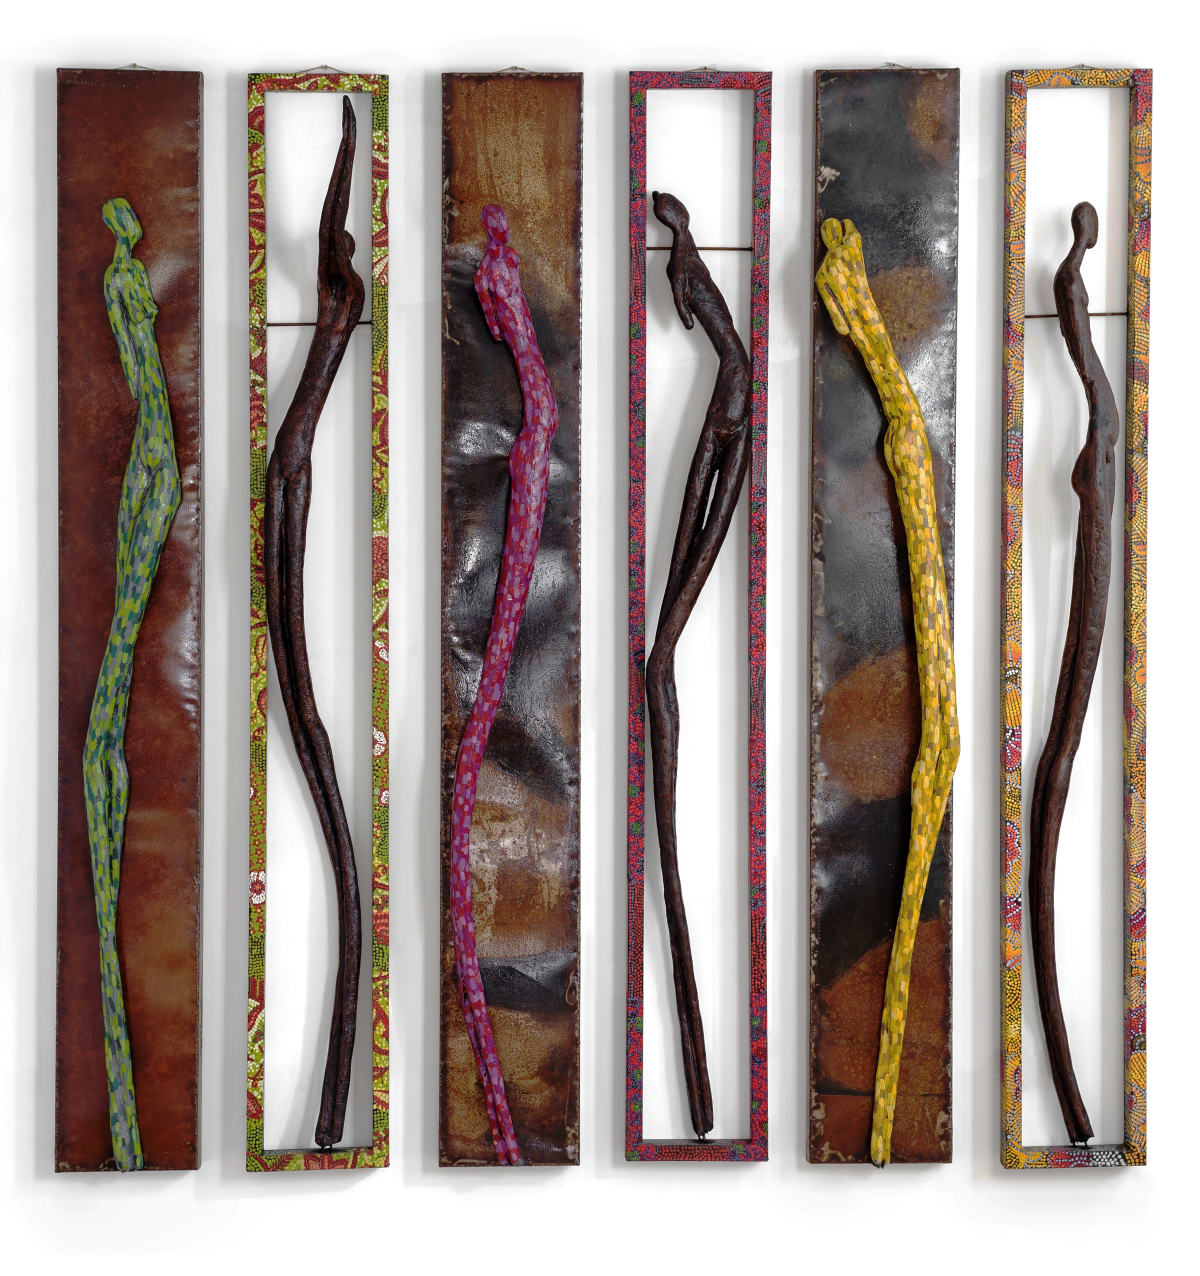 P Ju Alatise Ibeji Sticks 2016 Wrought Iron Acrylic Fibreglass Cast 178 X 23 X 6 Cm Each 2